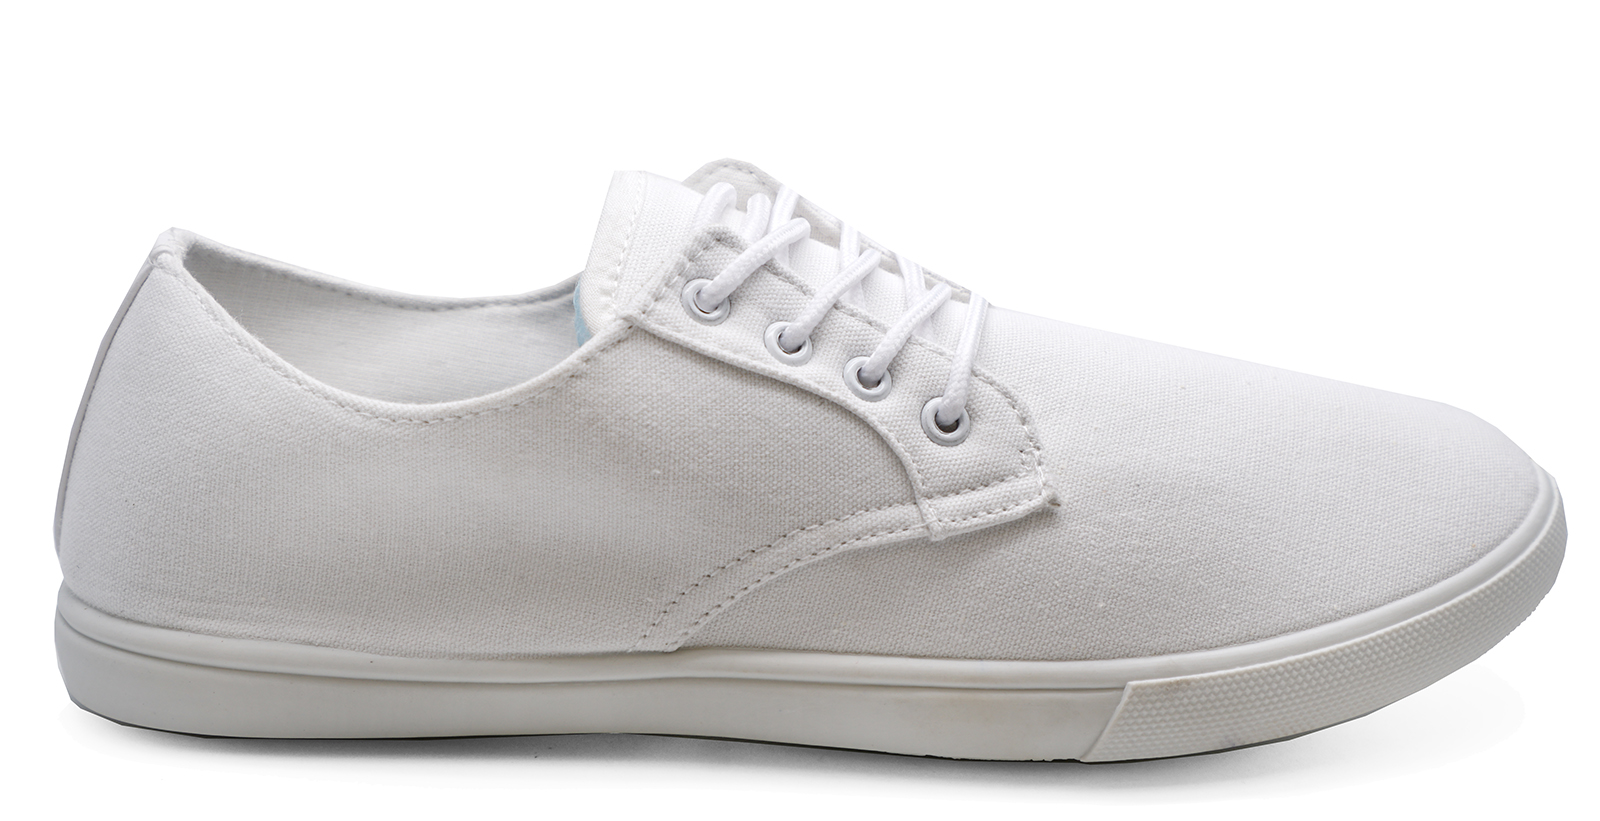 MENS-LACE-UP-WHITE-CANVAS-FLAT-TRAINER-PLIMSOLL-PUMPS-CASUAL-SHOES-SIZES-6-12 thumbnail 18